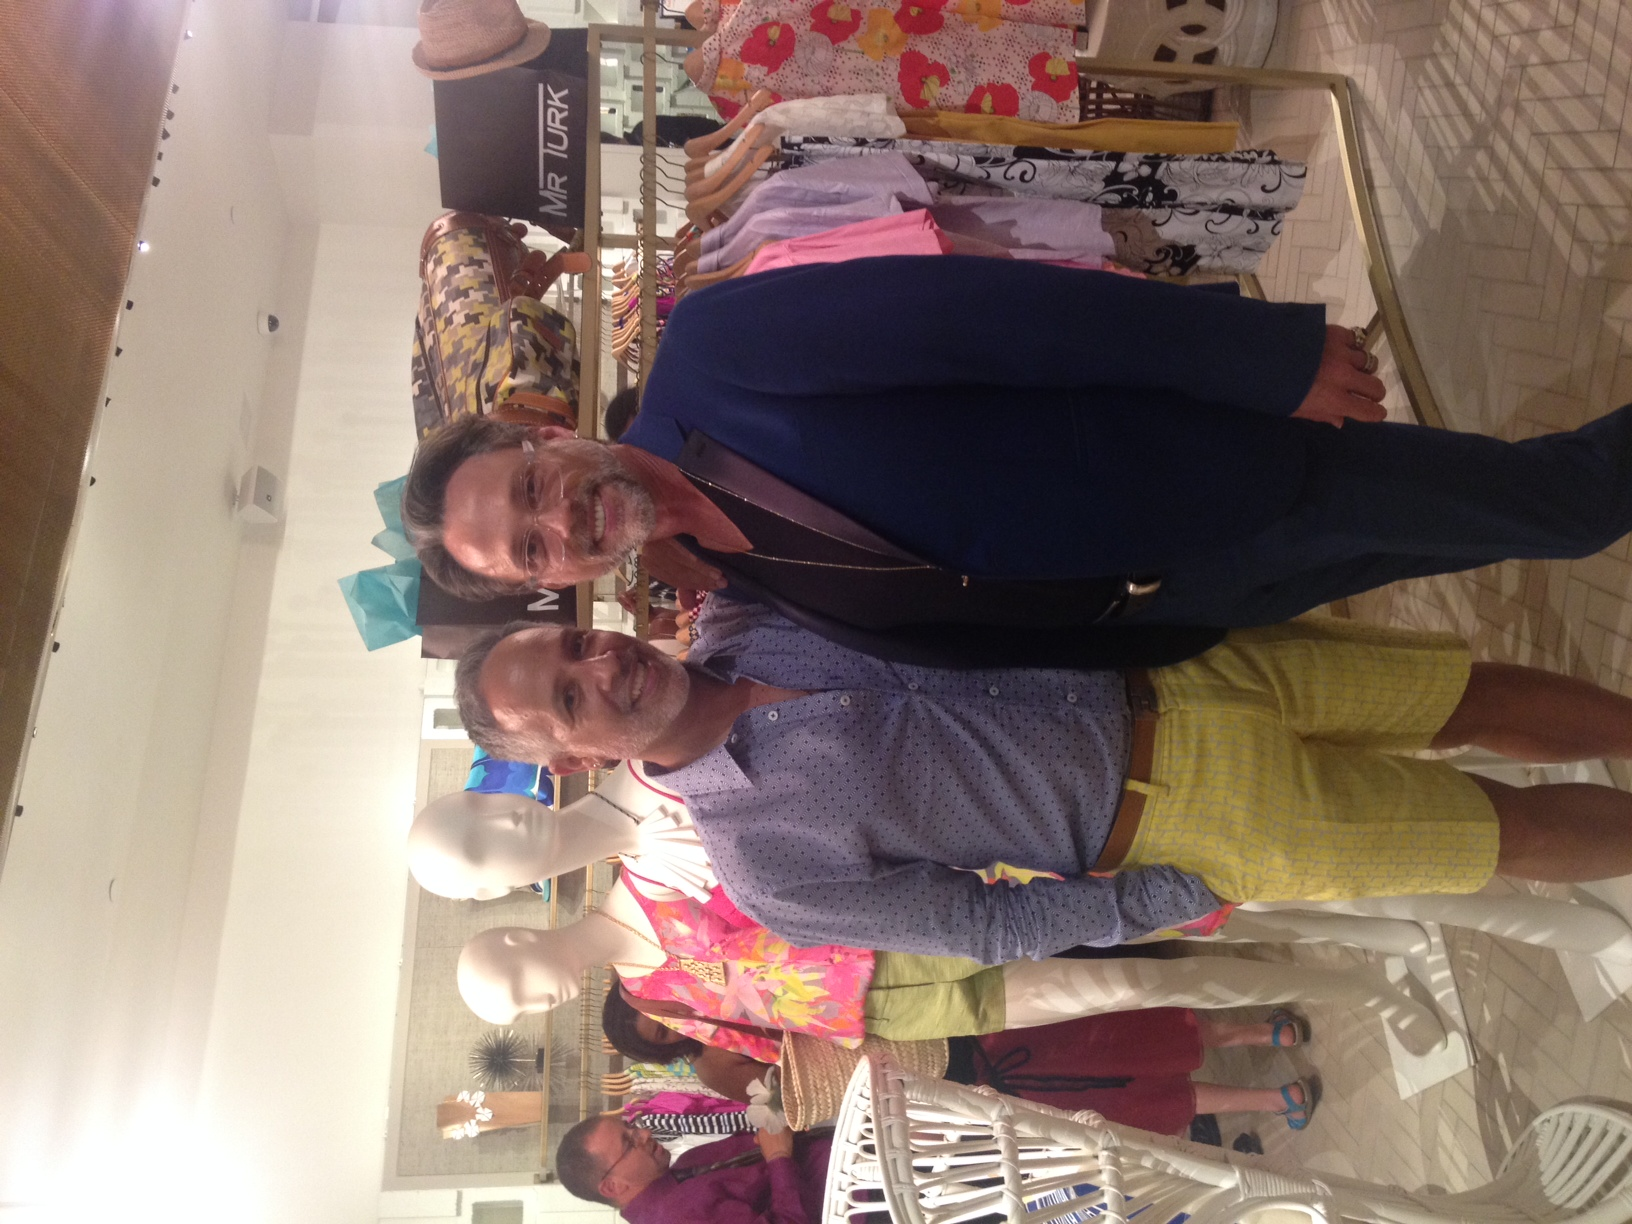 Mr Turk found a new friend with Steve Hightower, one of the most prominent stylists in Atlanta.